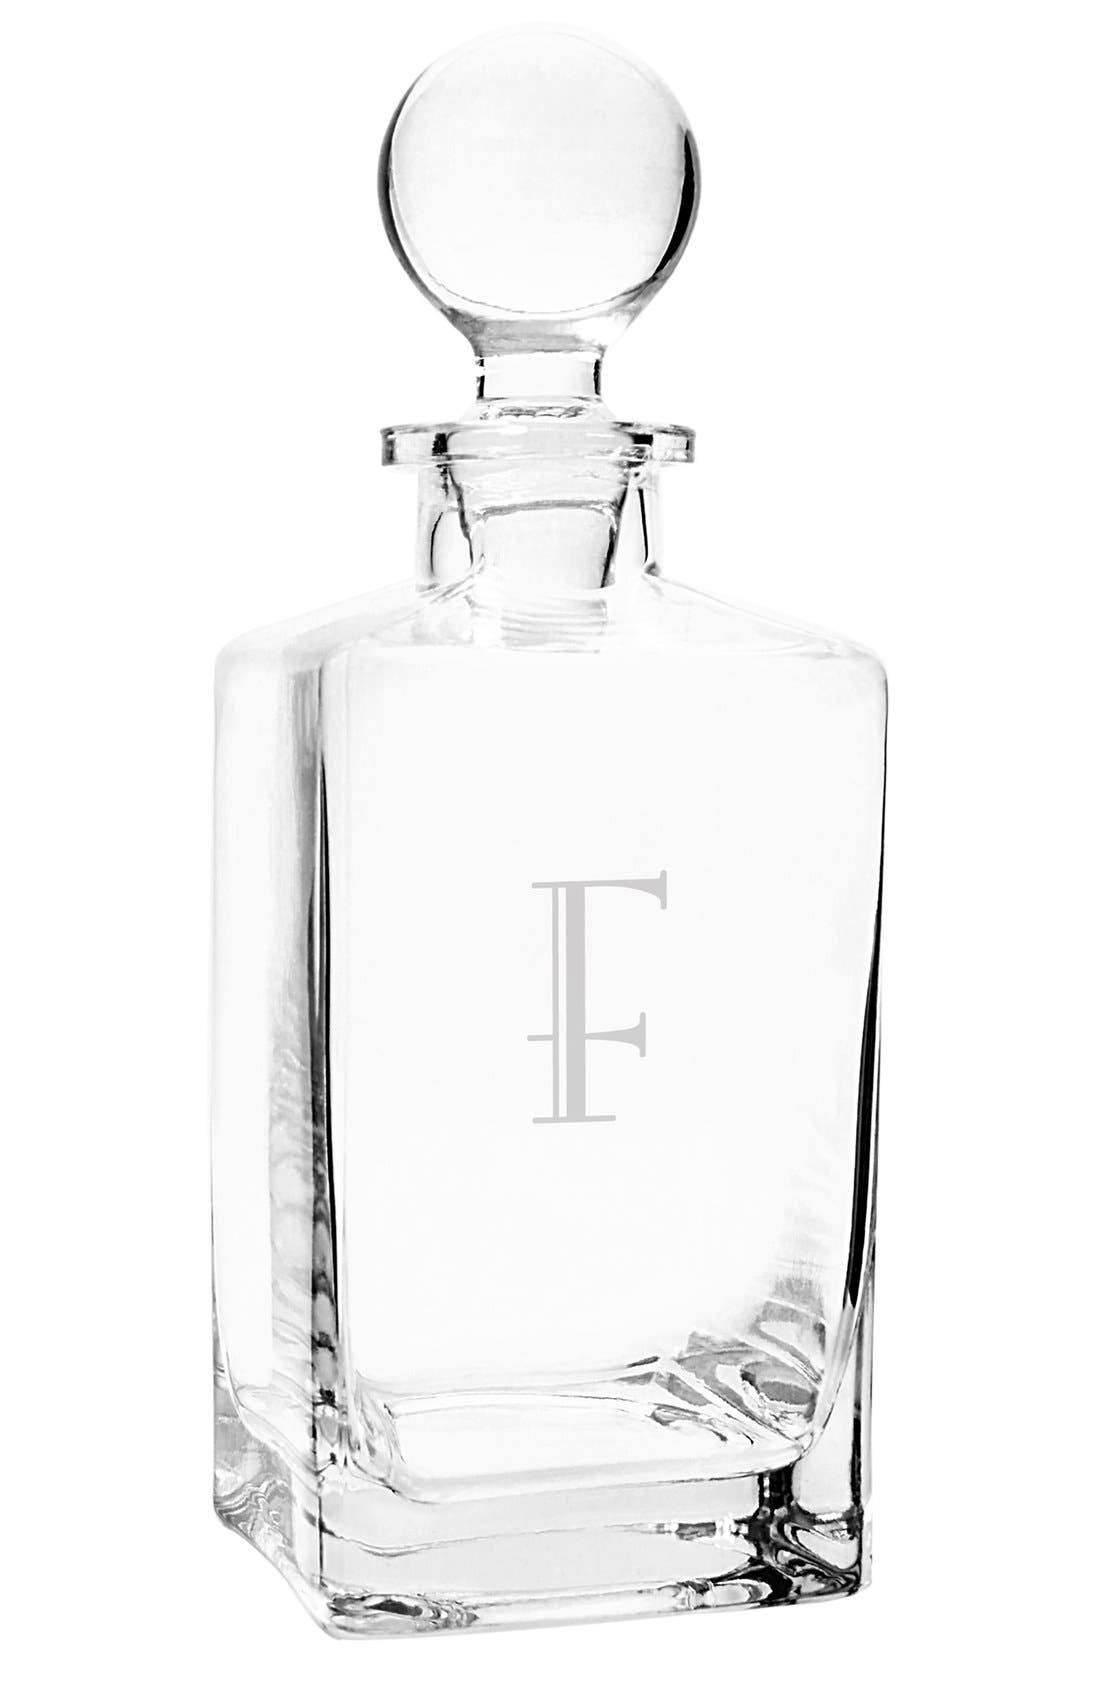 Monogram Whiskey Decanter & Stopper,                         Main,                         color, F